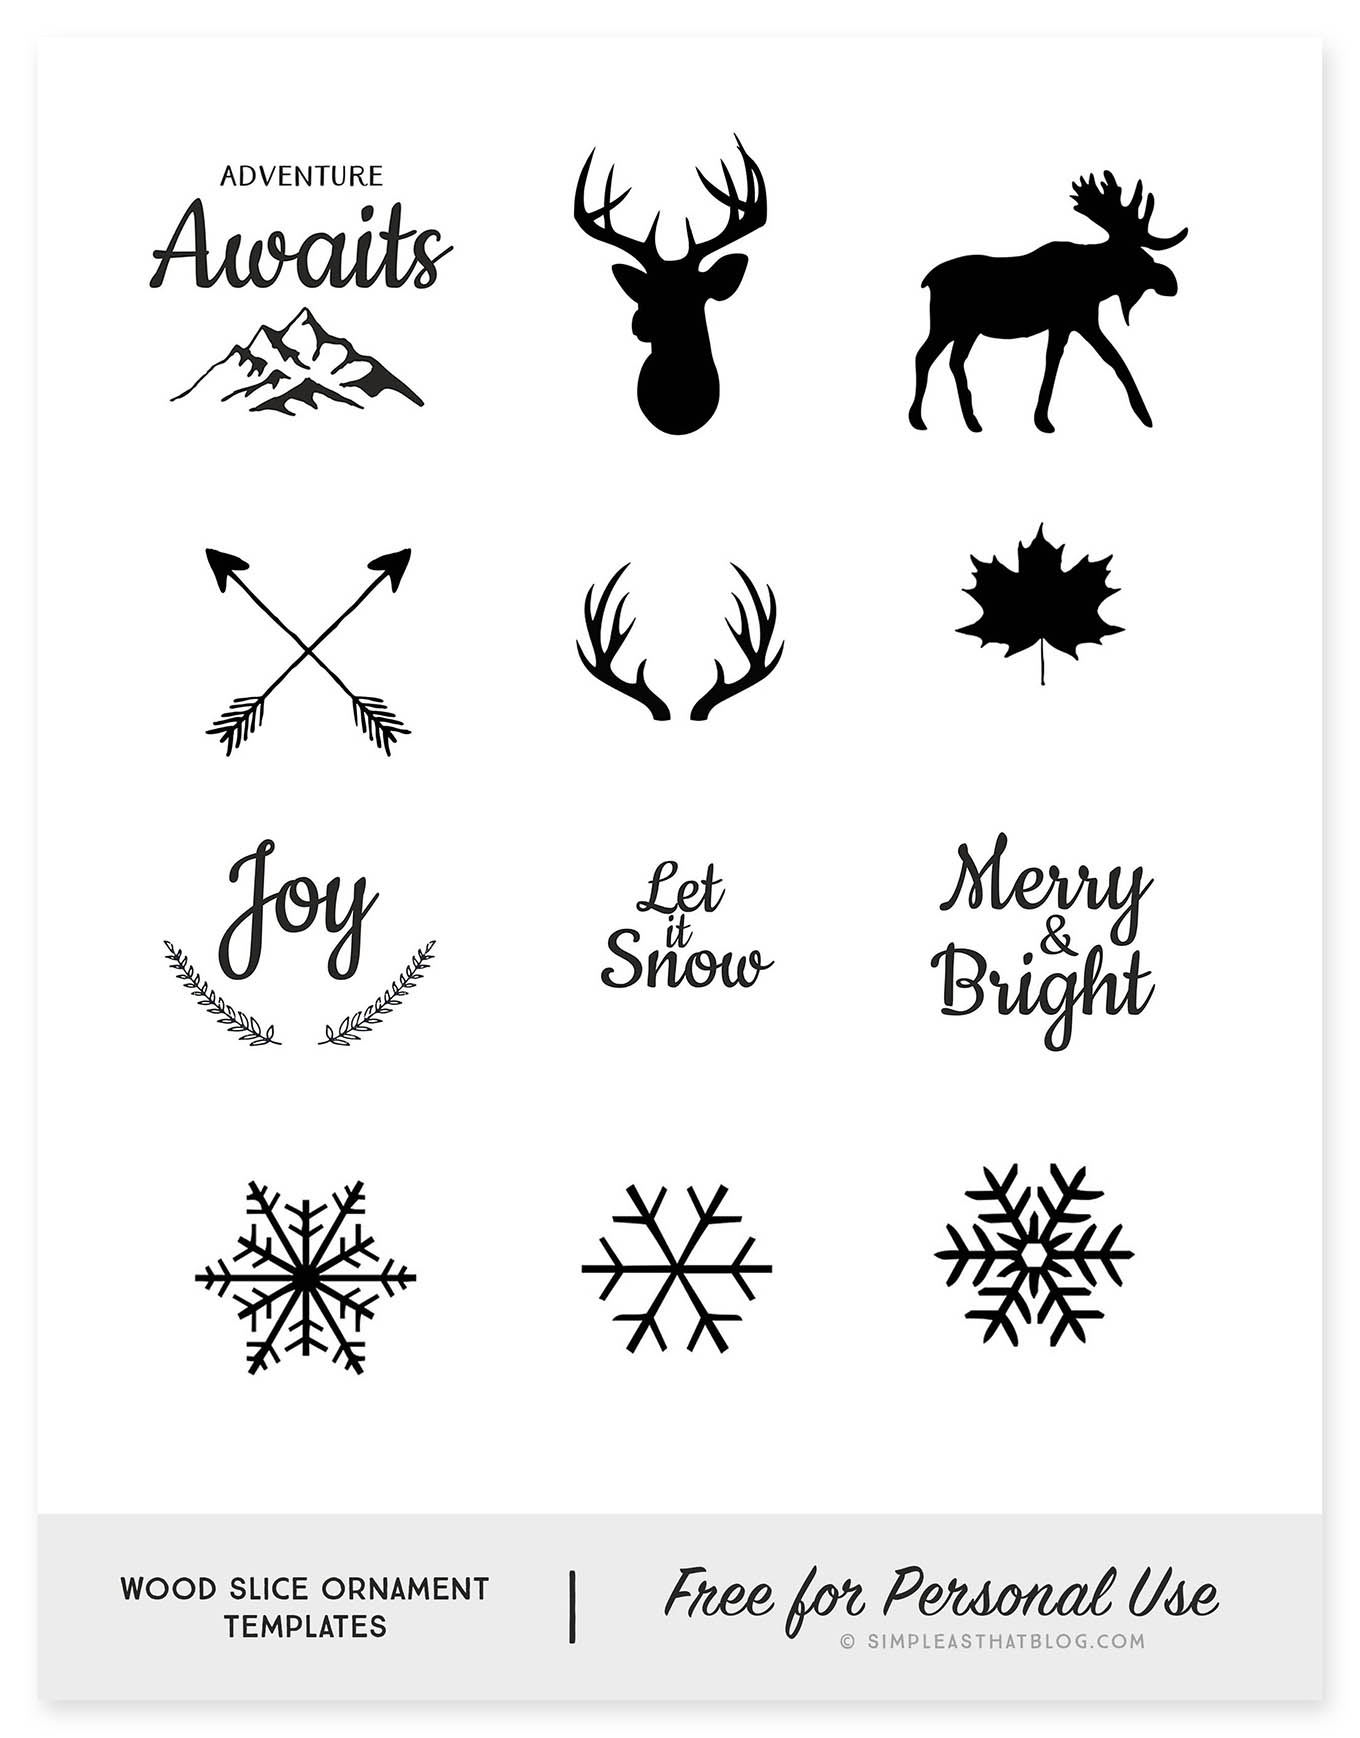 photo relating to Printable Ornaments Template called Picket Cut Ornament Template - Easy as That